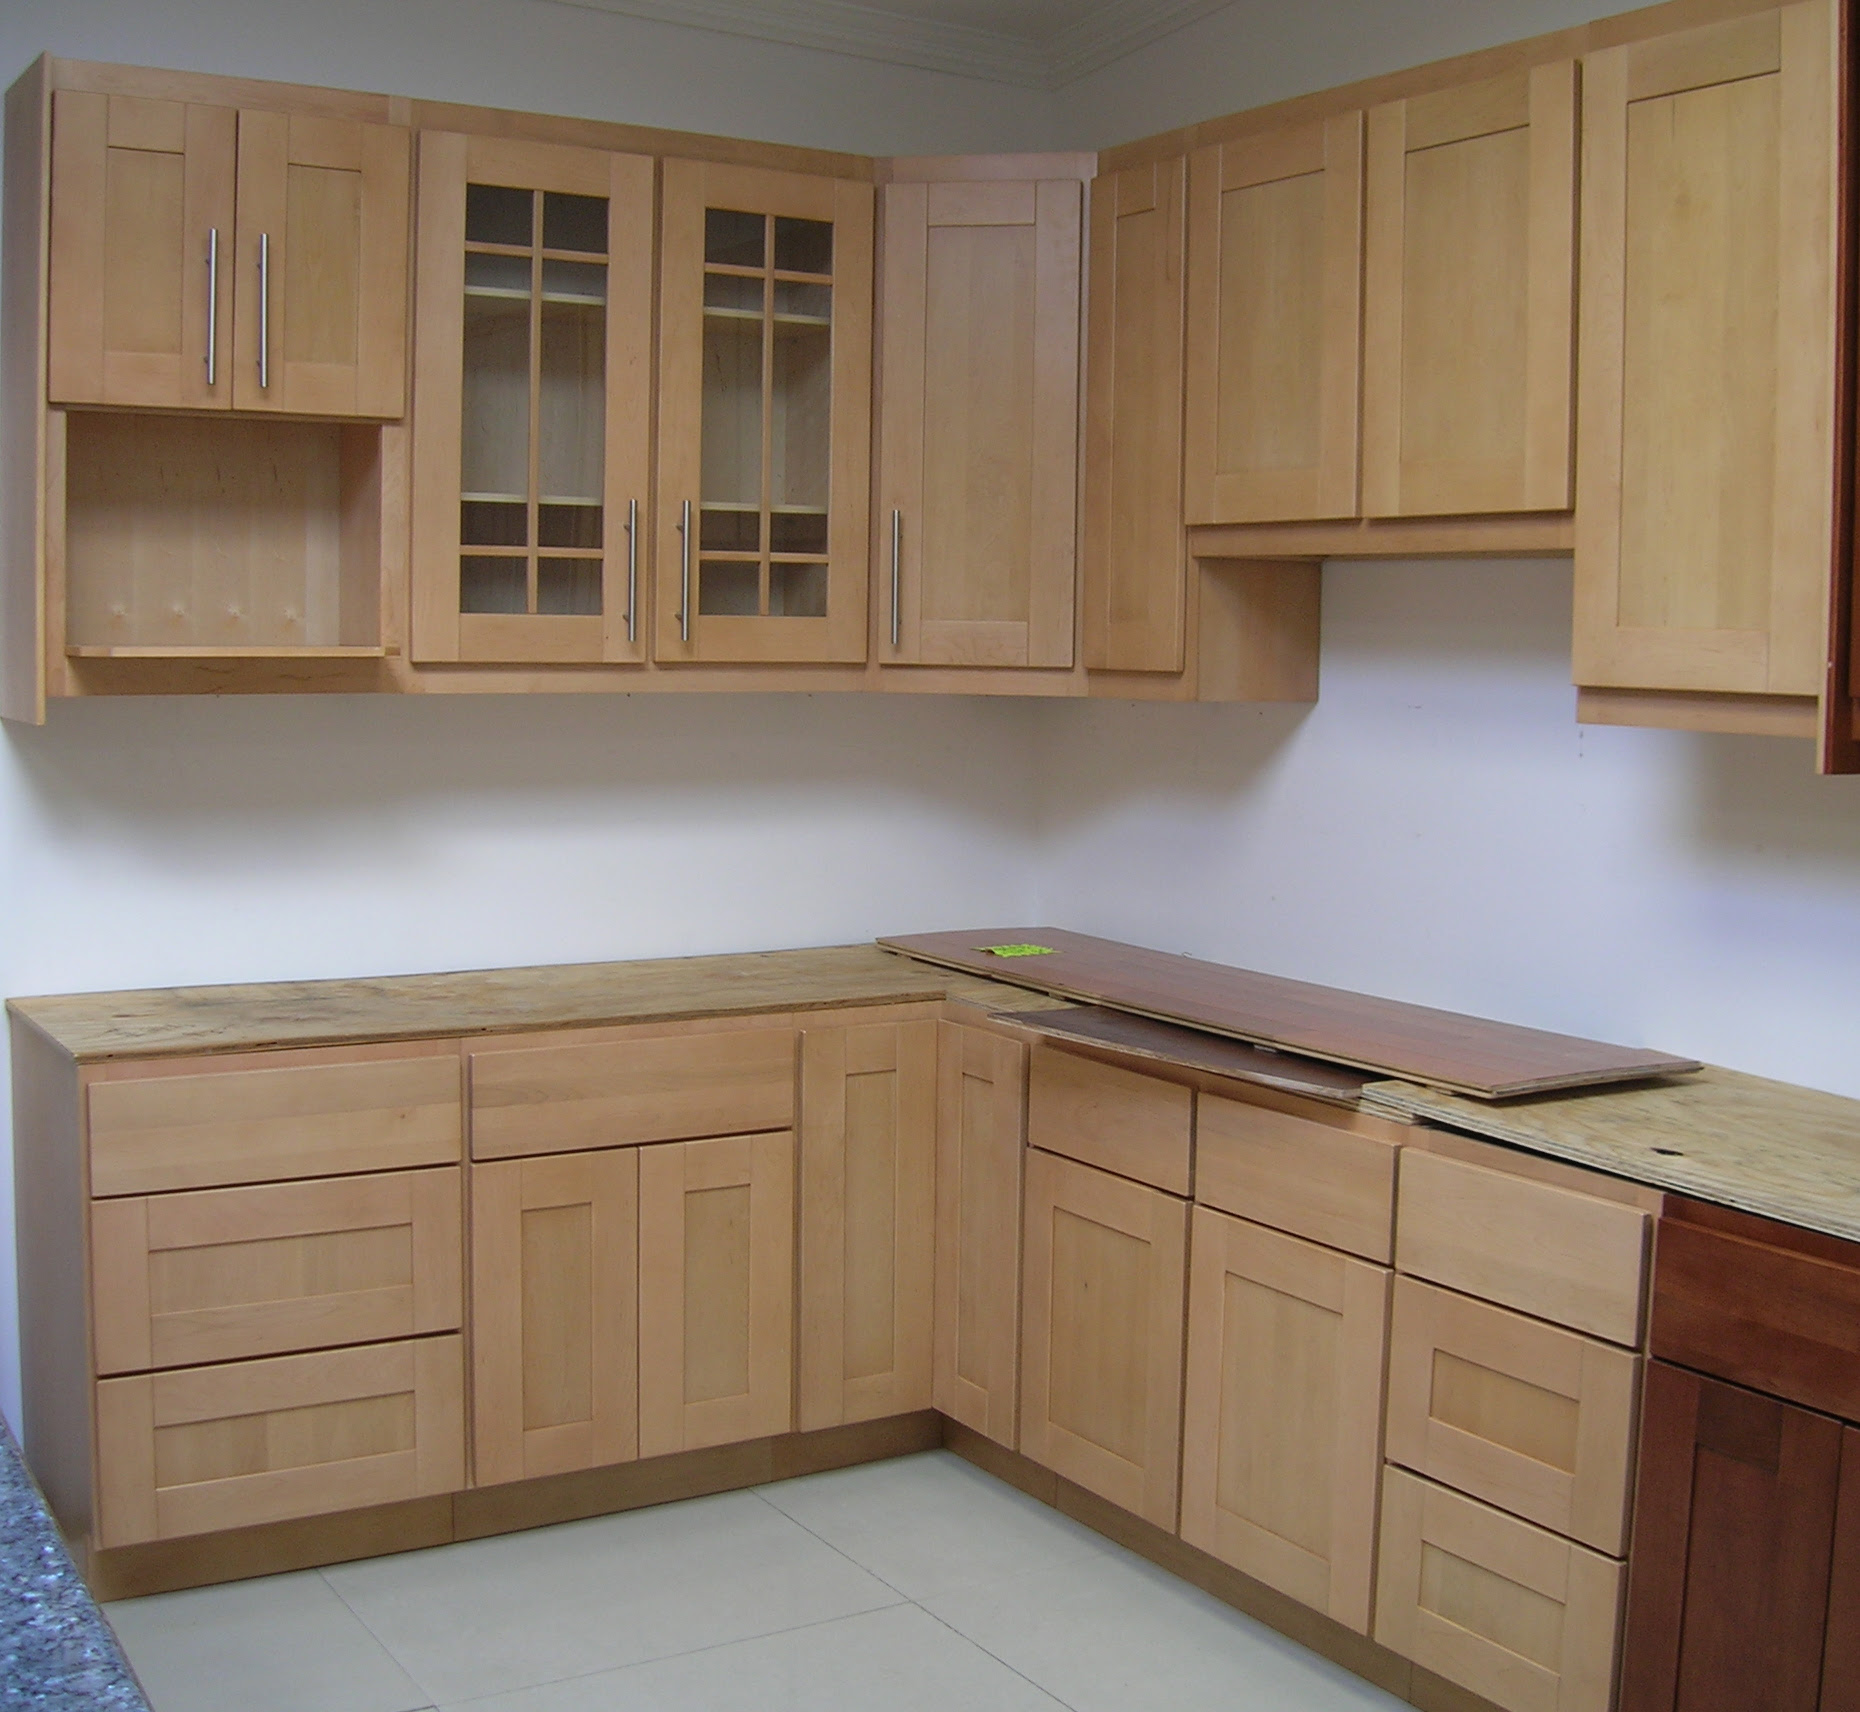 Maple Kitchen Cabinets And Wall Color - Home Design Jobs